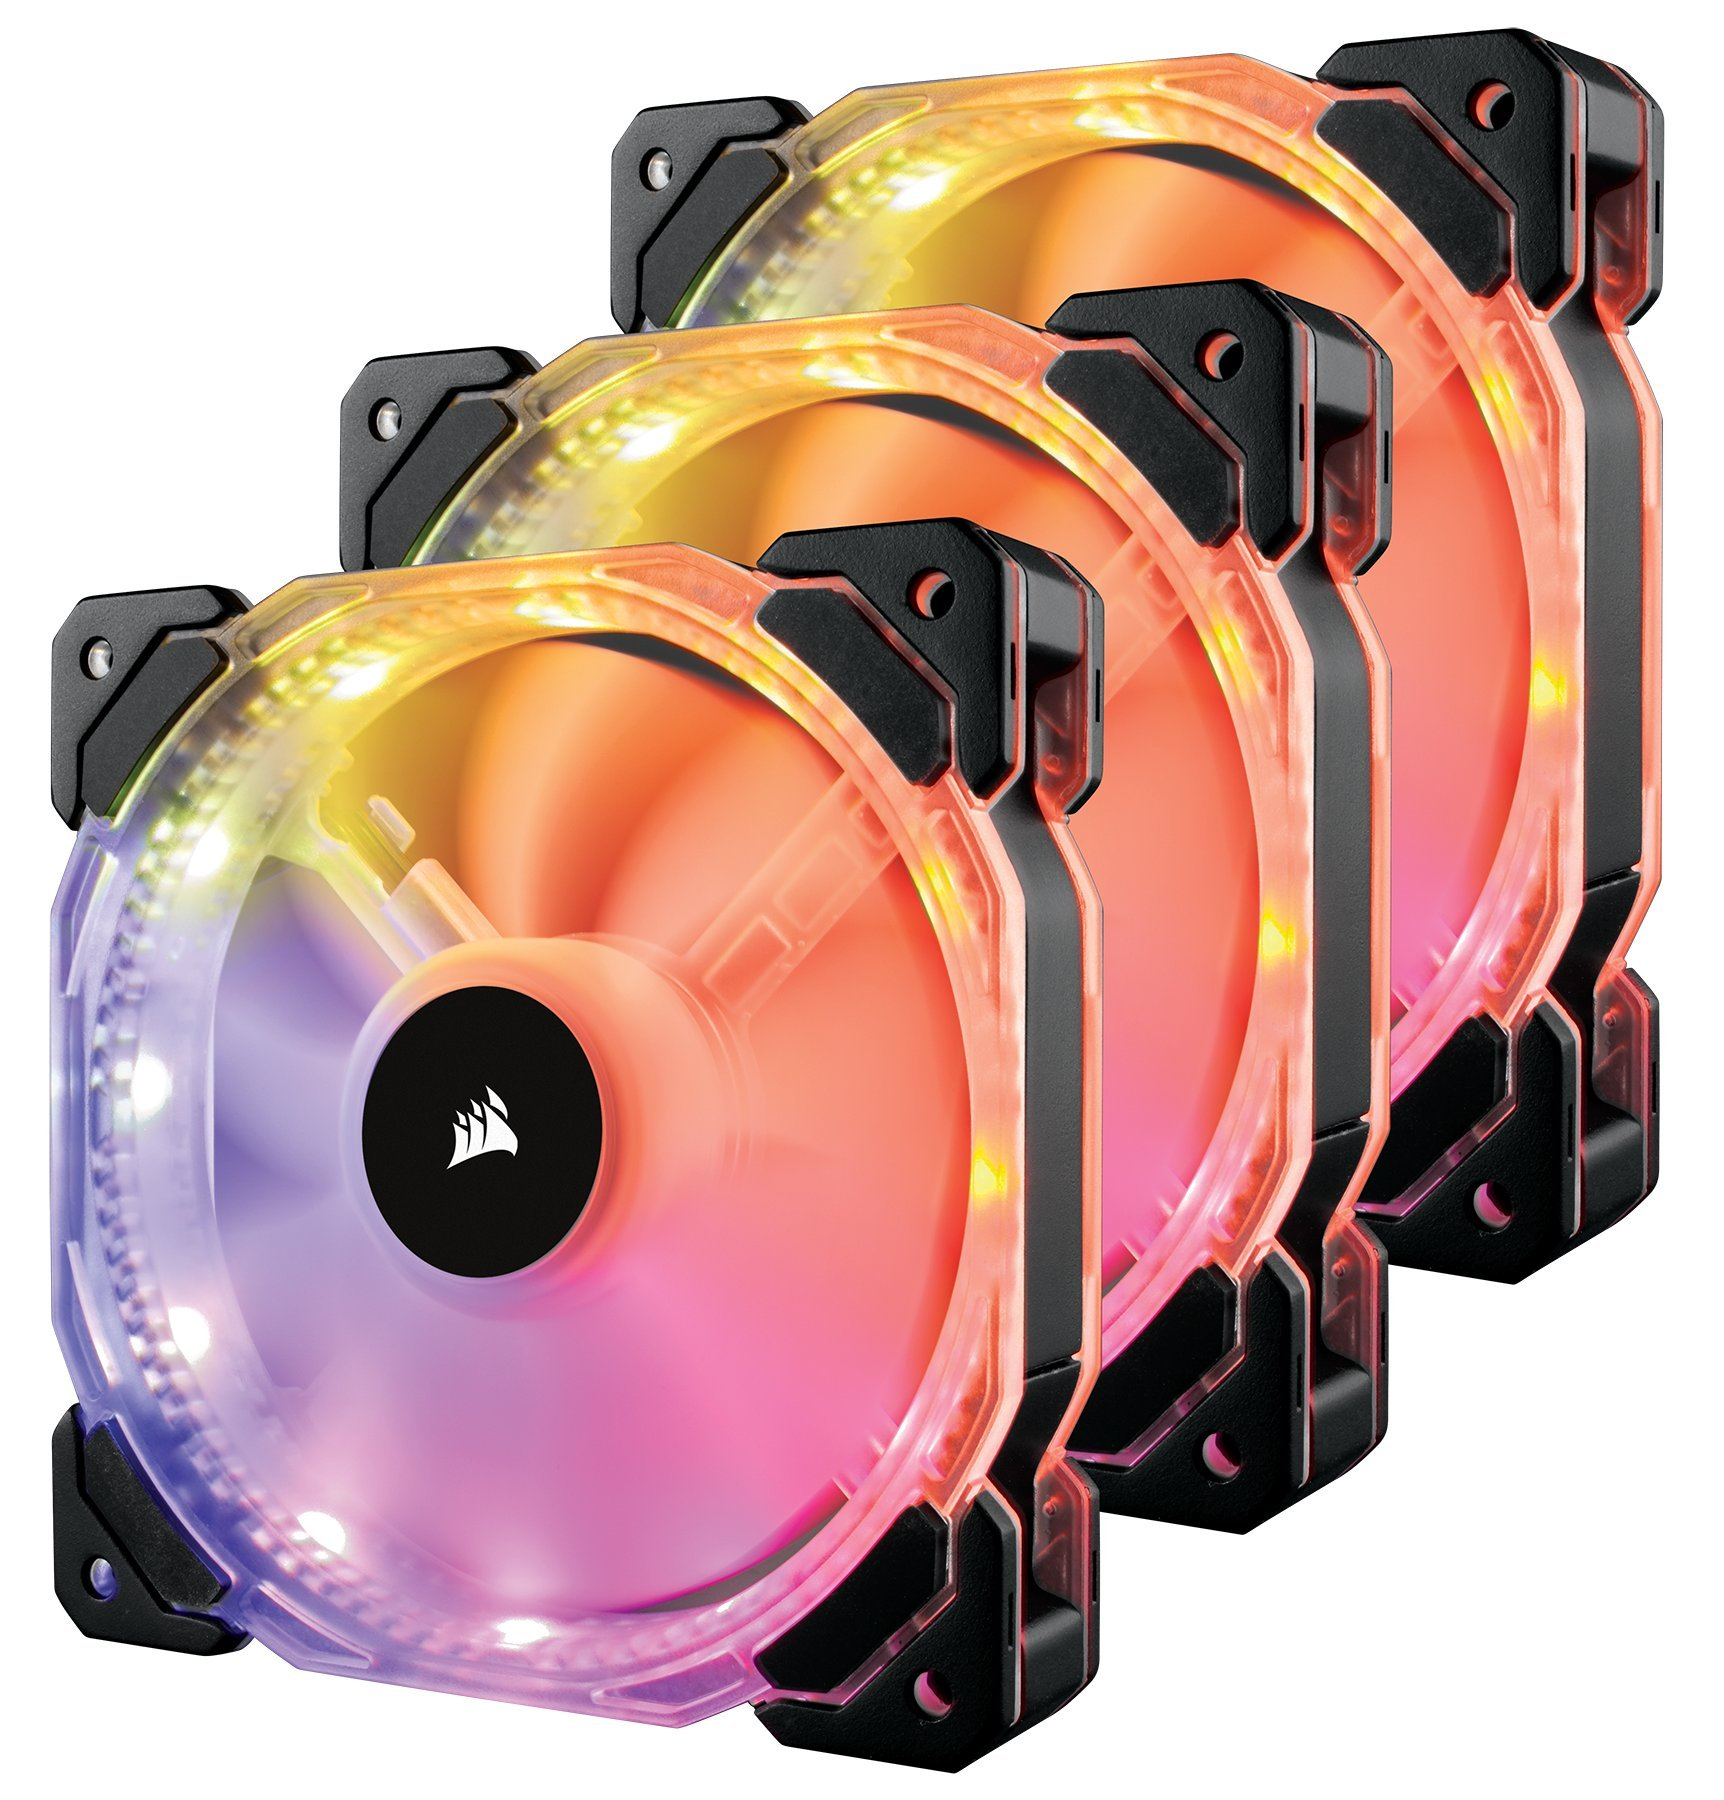 Corsair HD Series, HD120 RGB LED, 120mm High Performance RGB LED PWM three fans with controller by Corsair